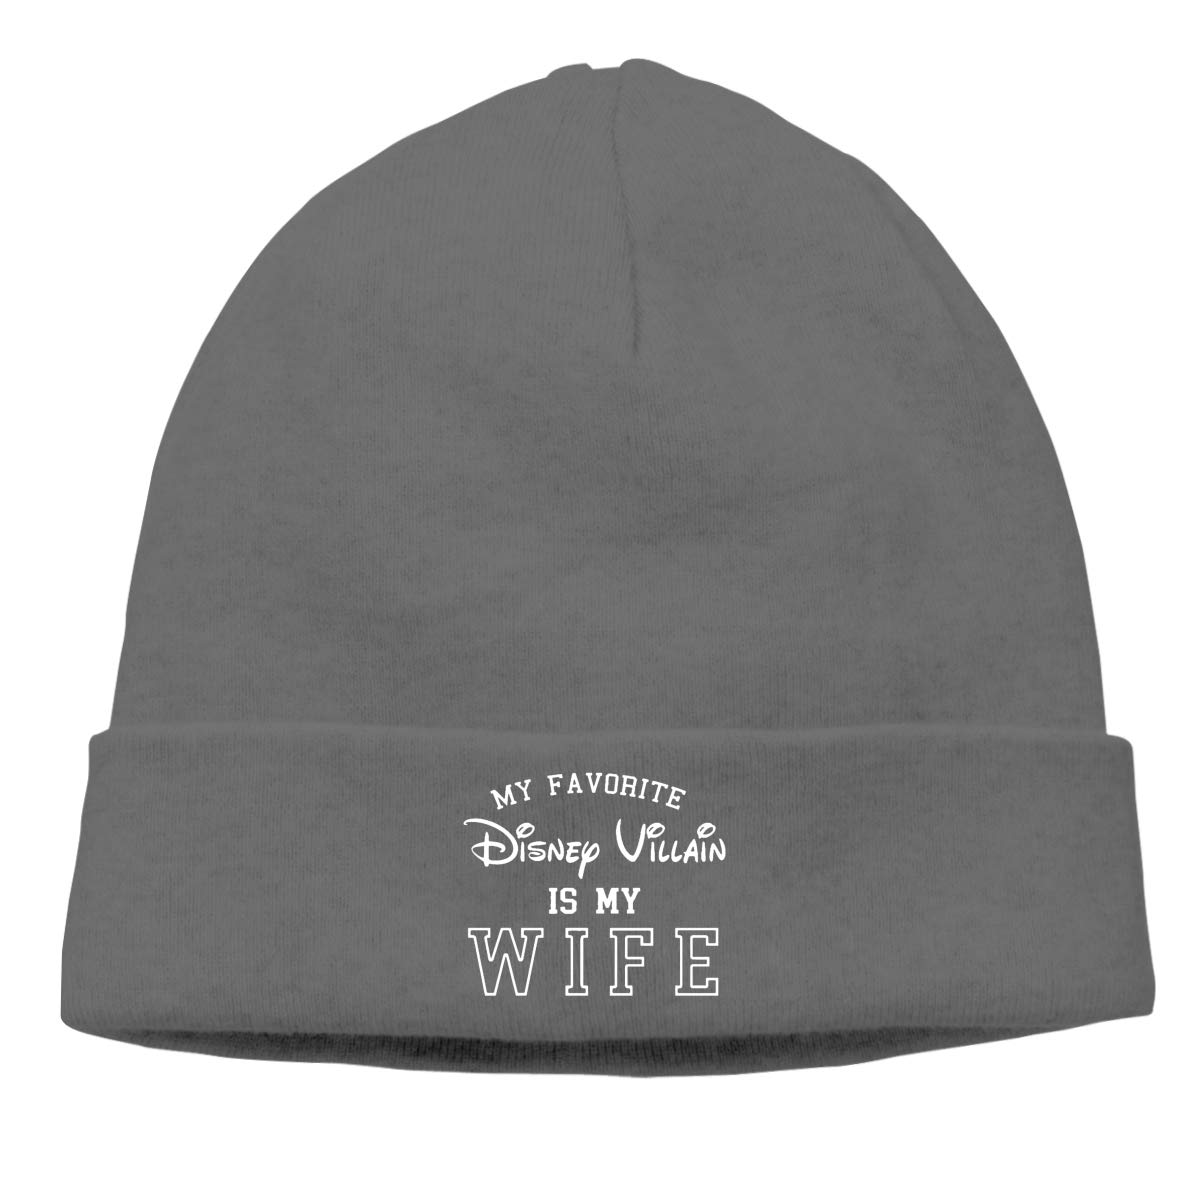 Simoner My Favorite Disney Villain is My Wife Warm Stretchy Solid Daily Skull Cap,Knit Wool Beanie Hat Black